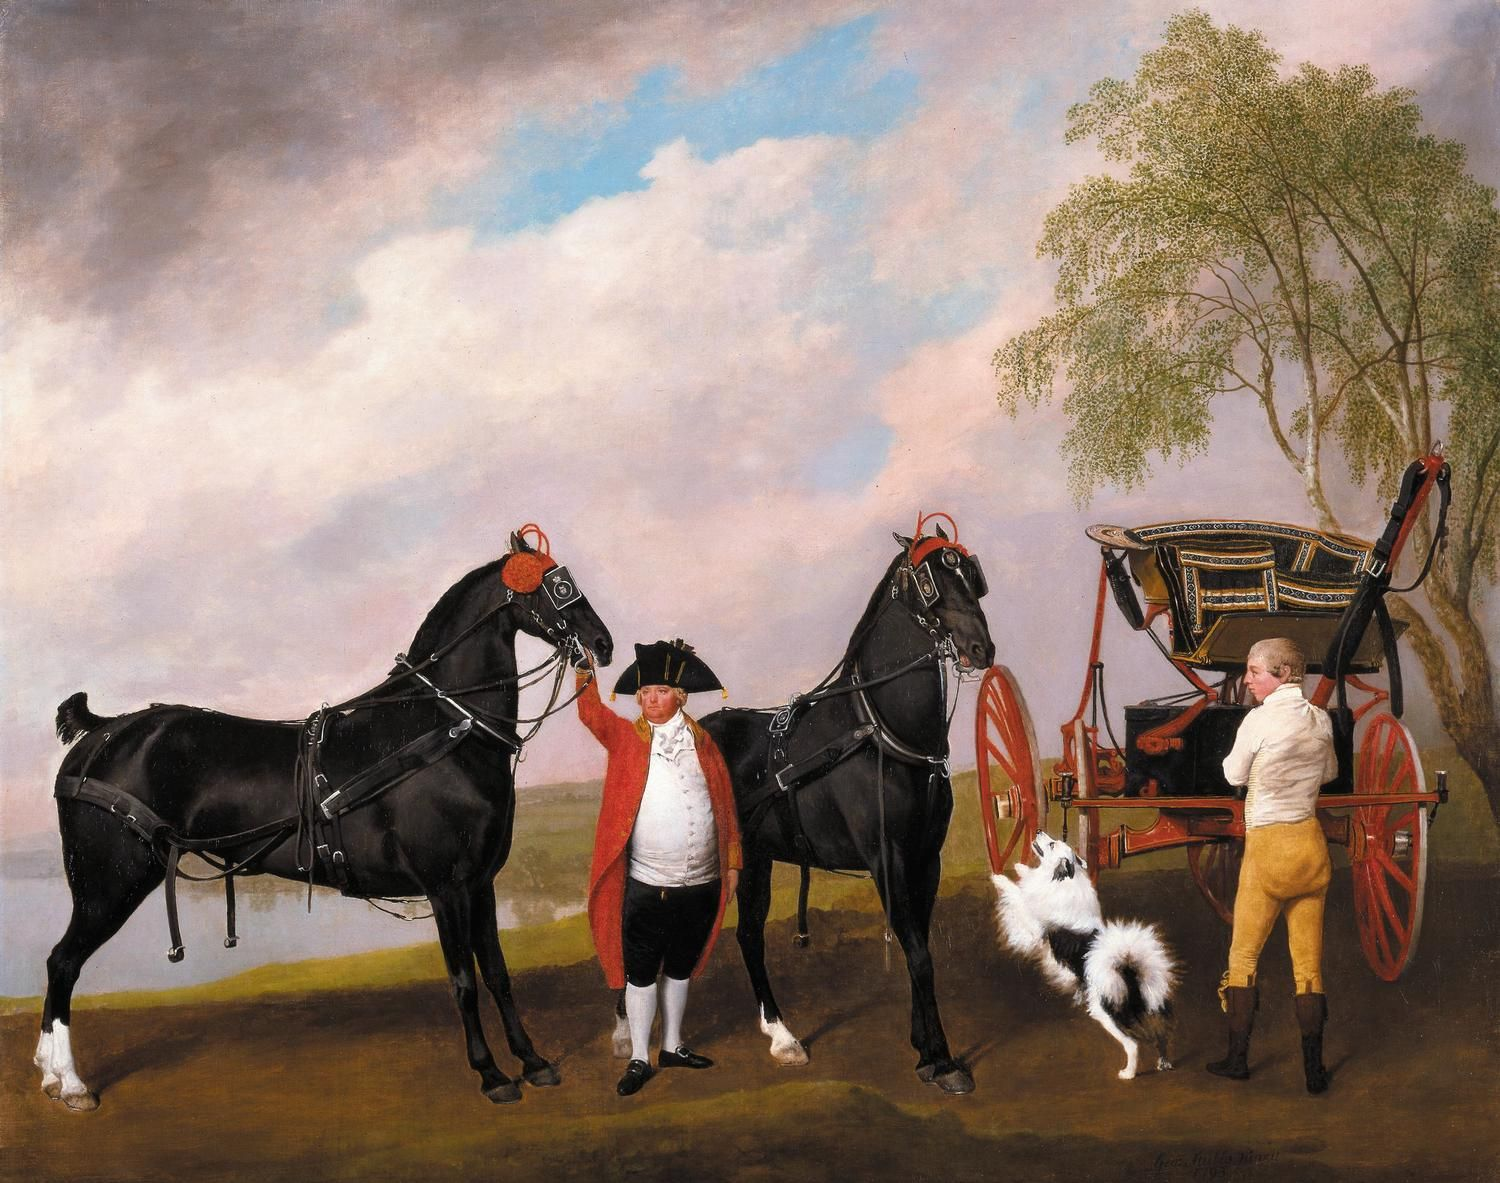 Pic of The Prince of Wales's Phaeton in The Royal Collection (painting by George Stubbs).